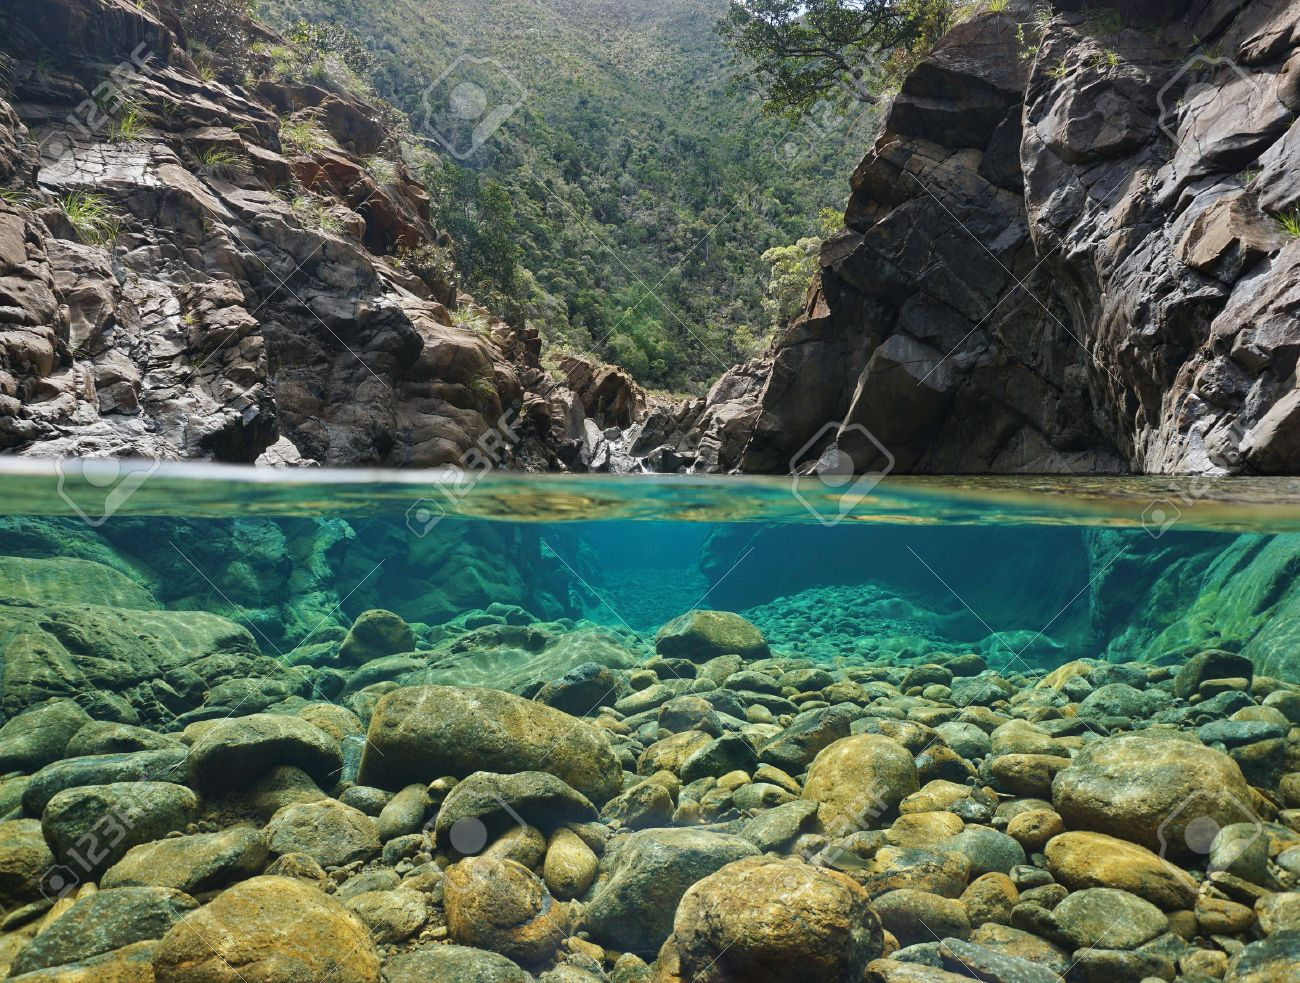 Rocks over and under the water split by waterline in a river with clear water, Dumbea river, New Caledonia - 69569163